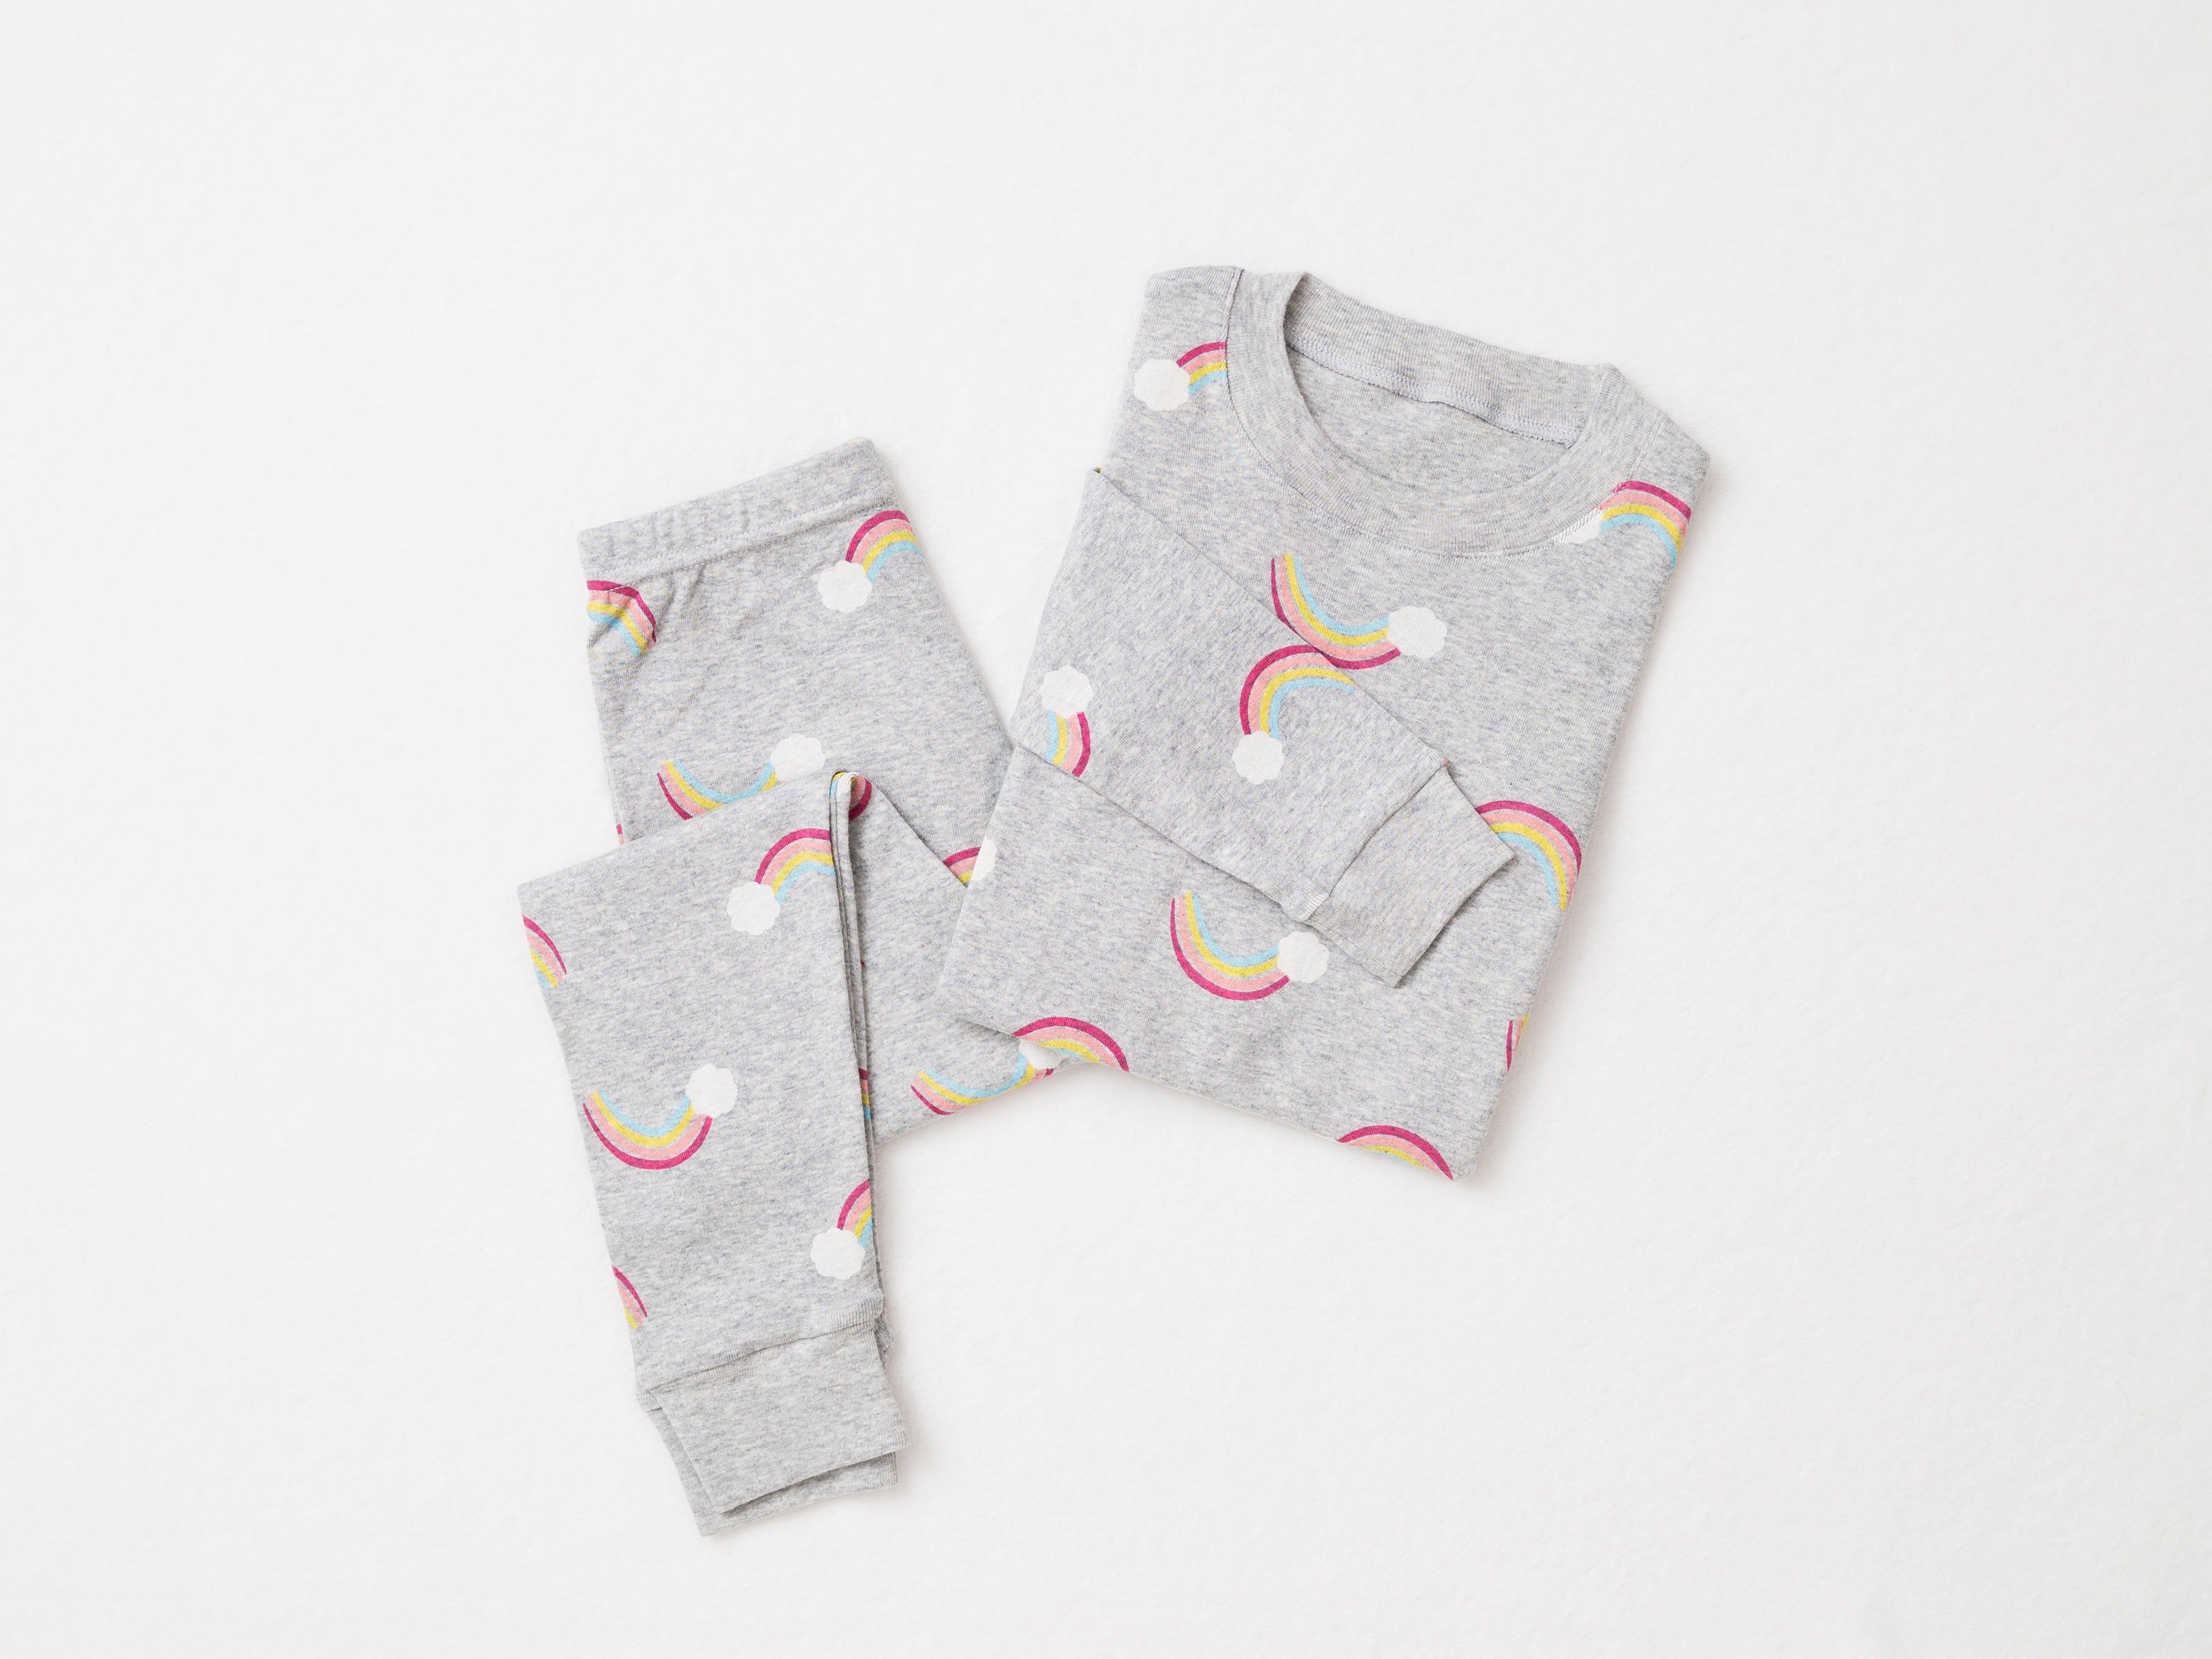 Cotton Pajamas (2pc)